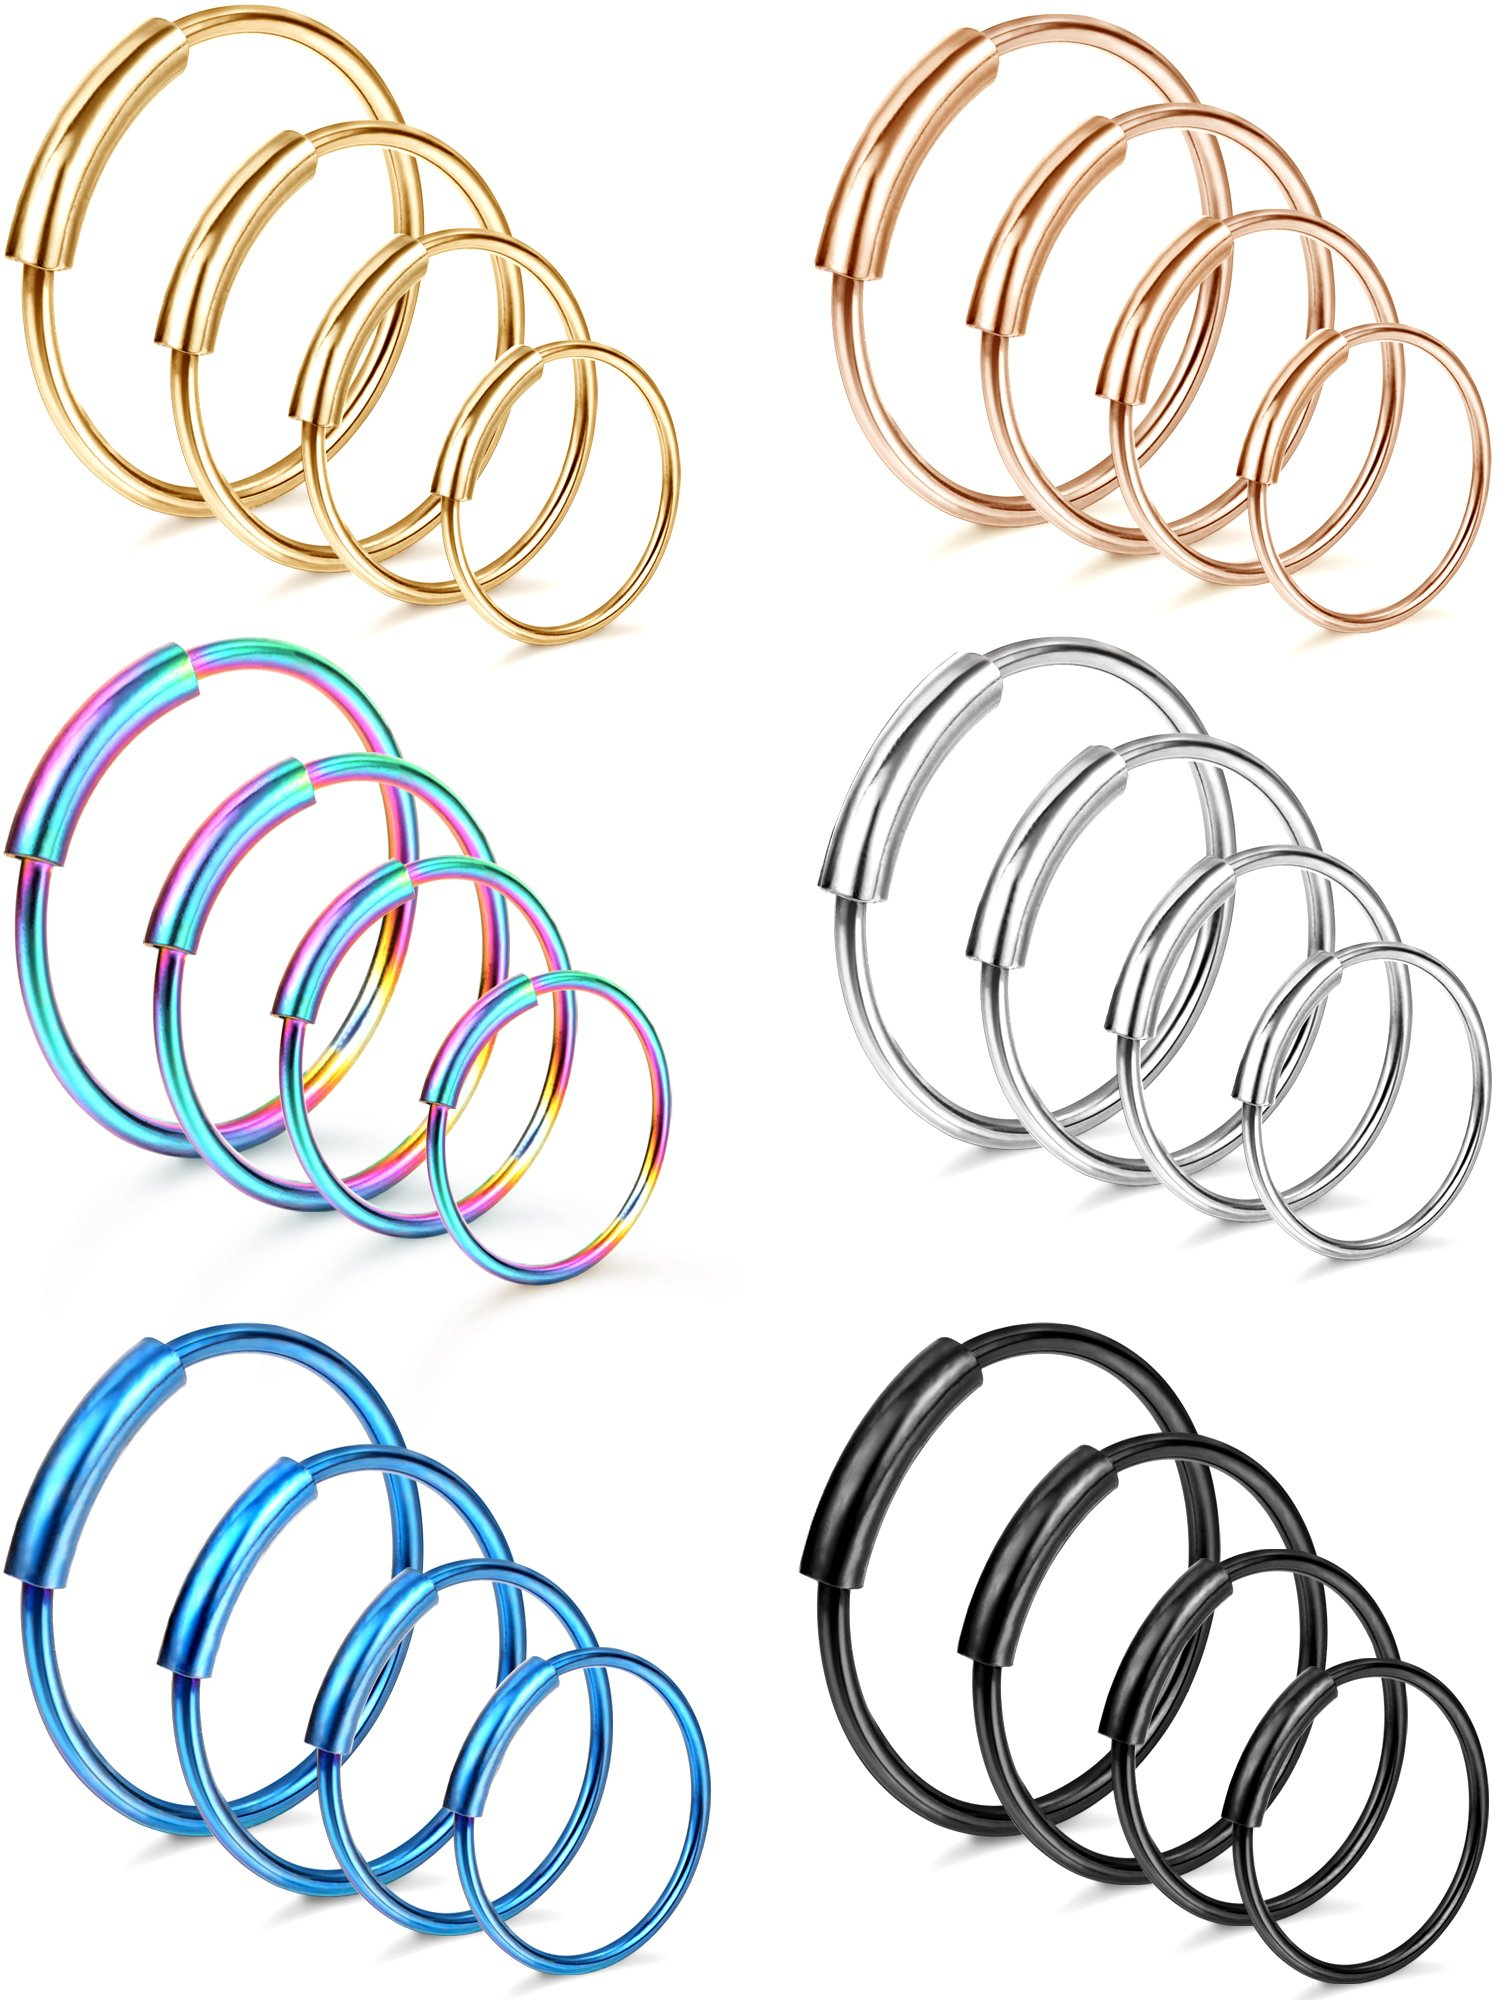 Hestya 24 Pieces 20 G Stainless Steel Nose Ring Continuous Hoop Earrings Body Piercing for Tragus Cartilage Nose Lip